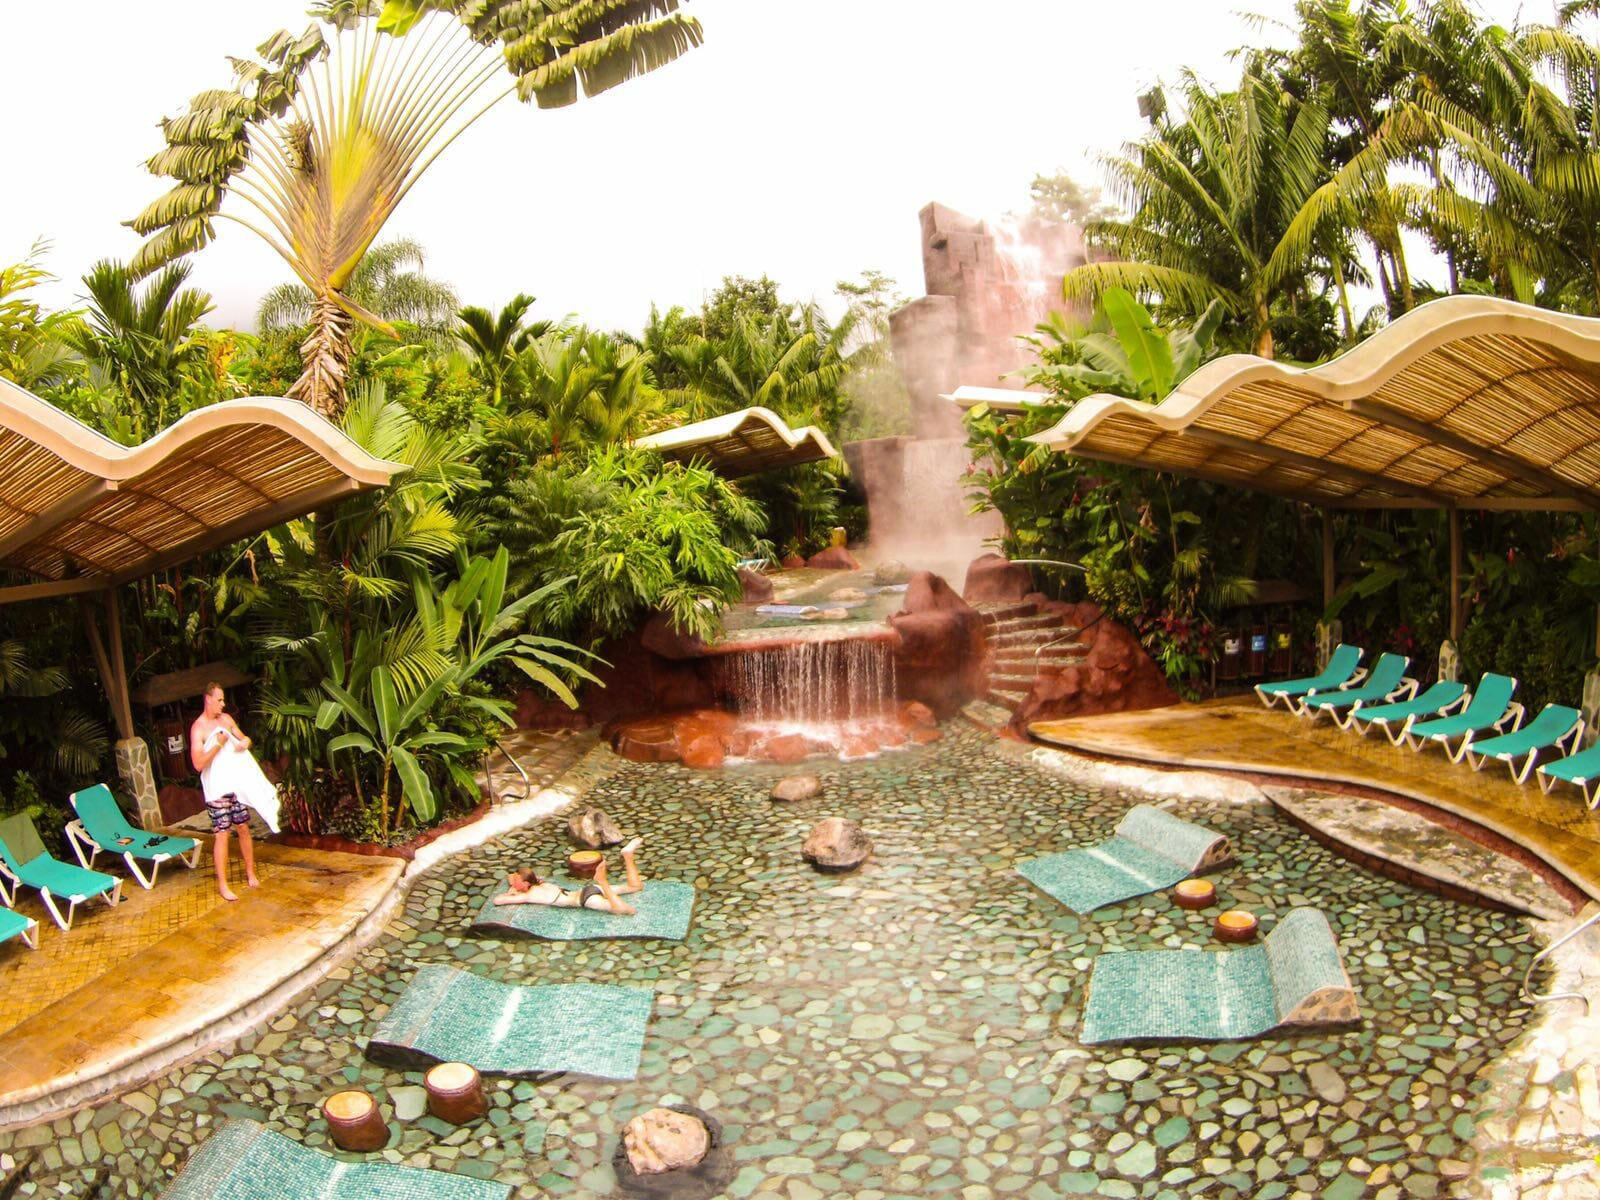 4 in1 Safari + Waterfall + Volcano + Baldi Hot Springs Tour